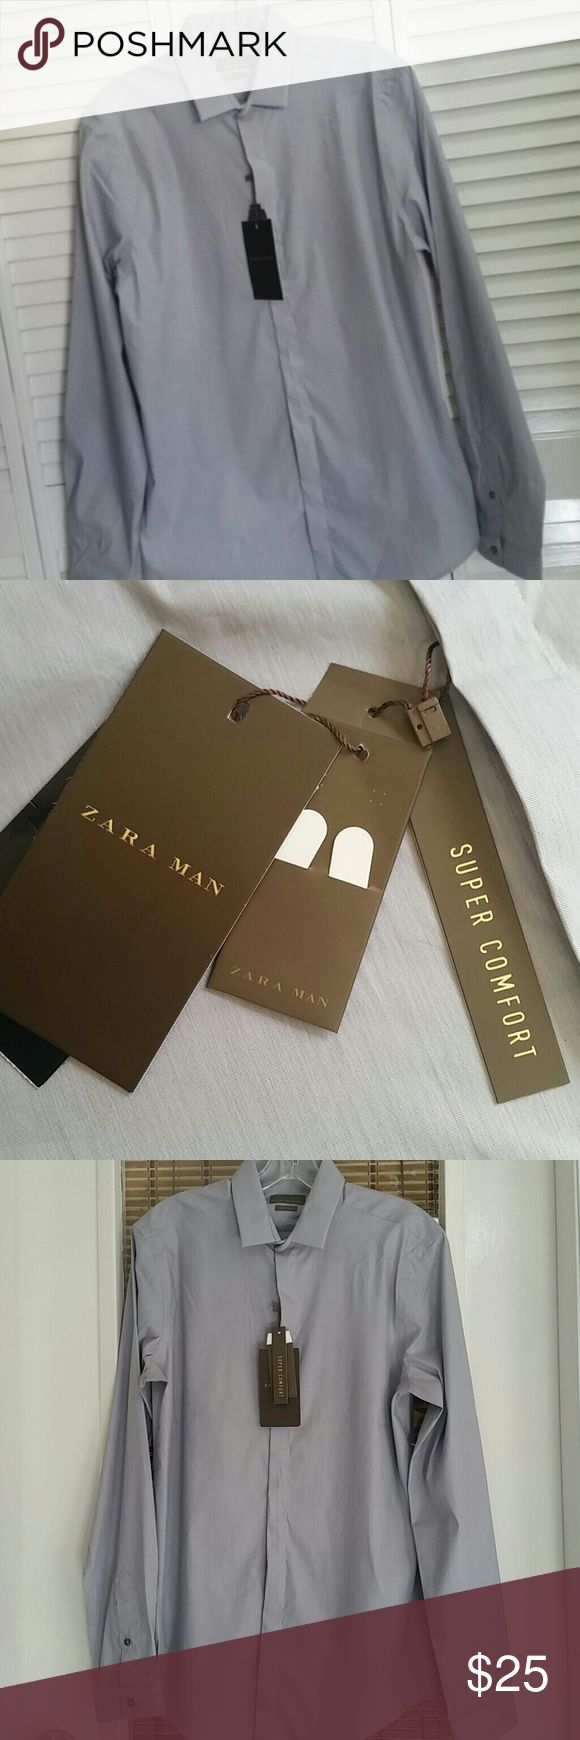 Zara Man shirt Slim fit sz M NEW Up for sale a formal Zara Man long sleeve shirt. The label reads size M slim fit, super comfort, 75% cotton 23 % poliammide,4 % elastane. Thank you for viewing Zara Shirts Dress Shirts